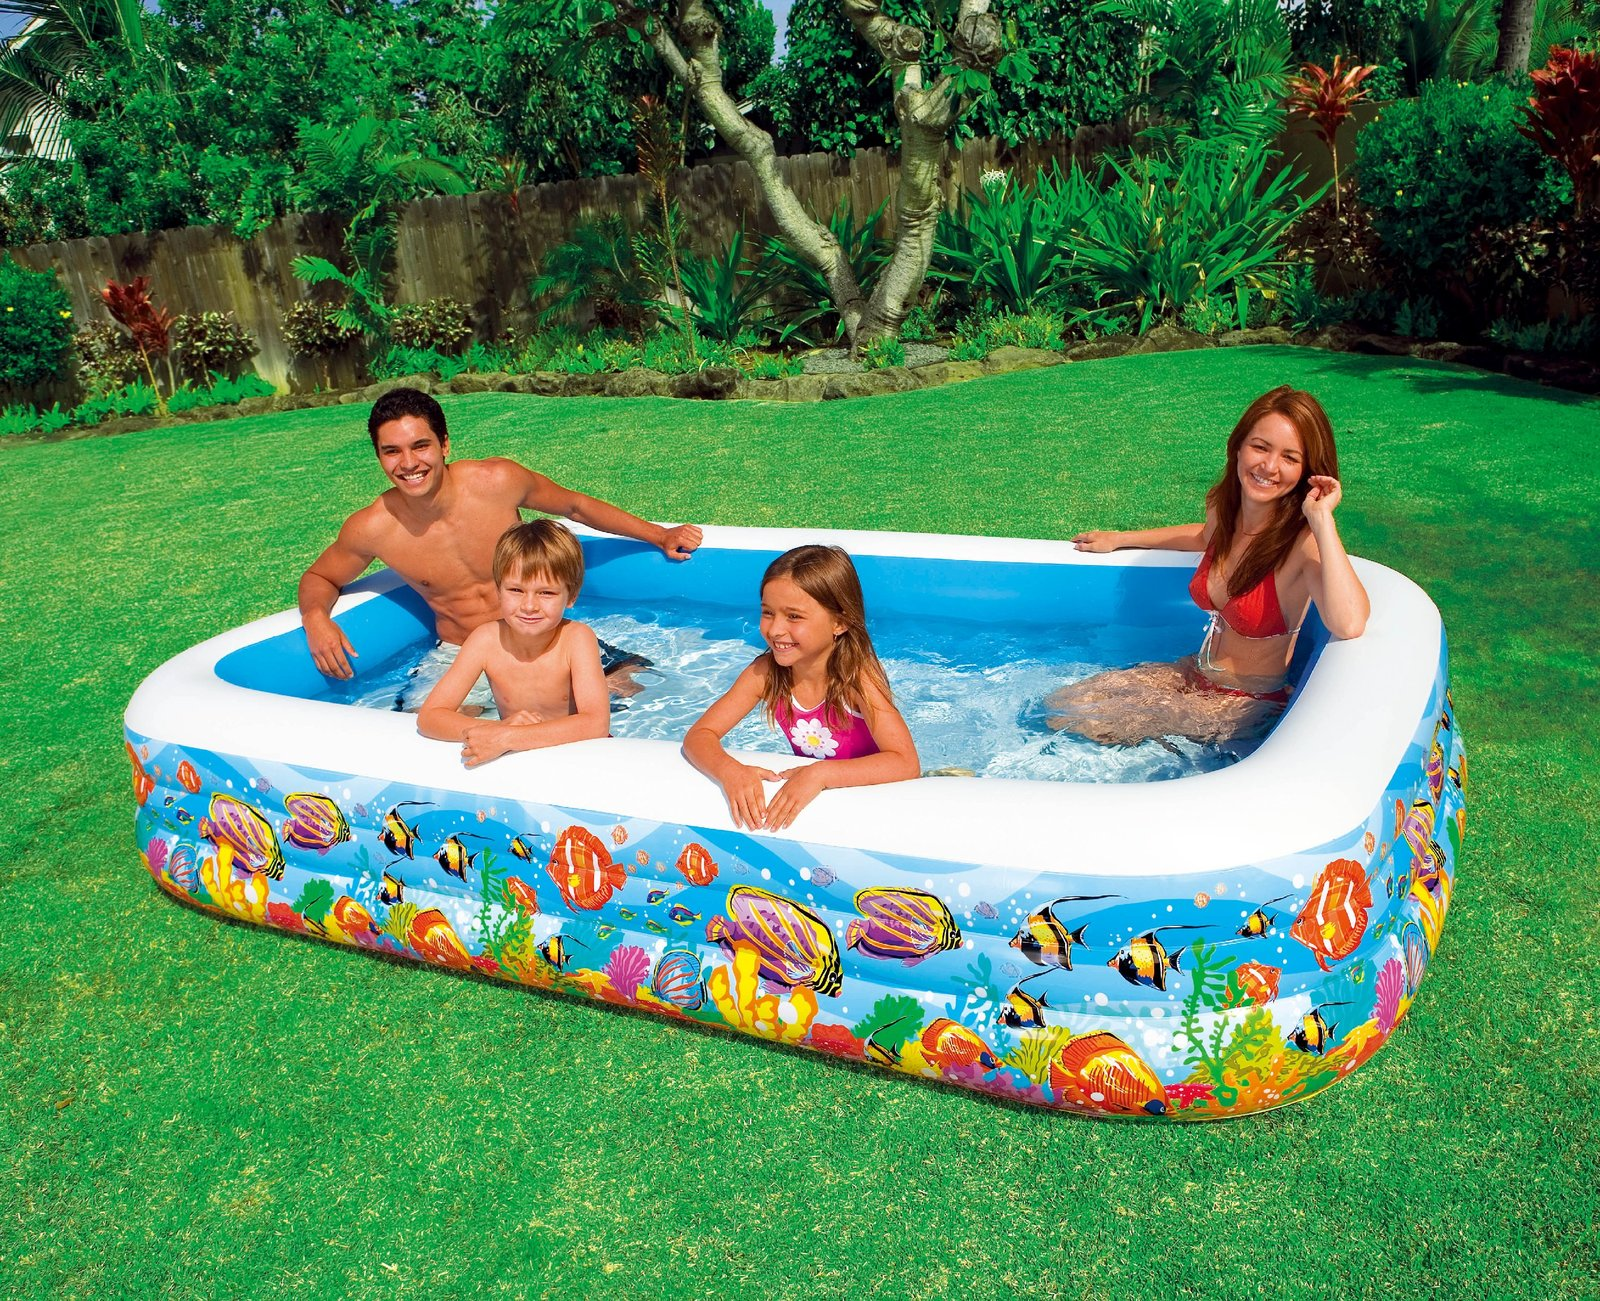 Intex swim center tropical reef family pool toy at mighty ape australia for Intex swimming pools australia